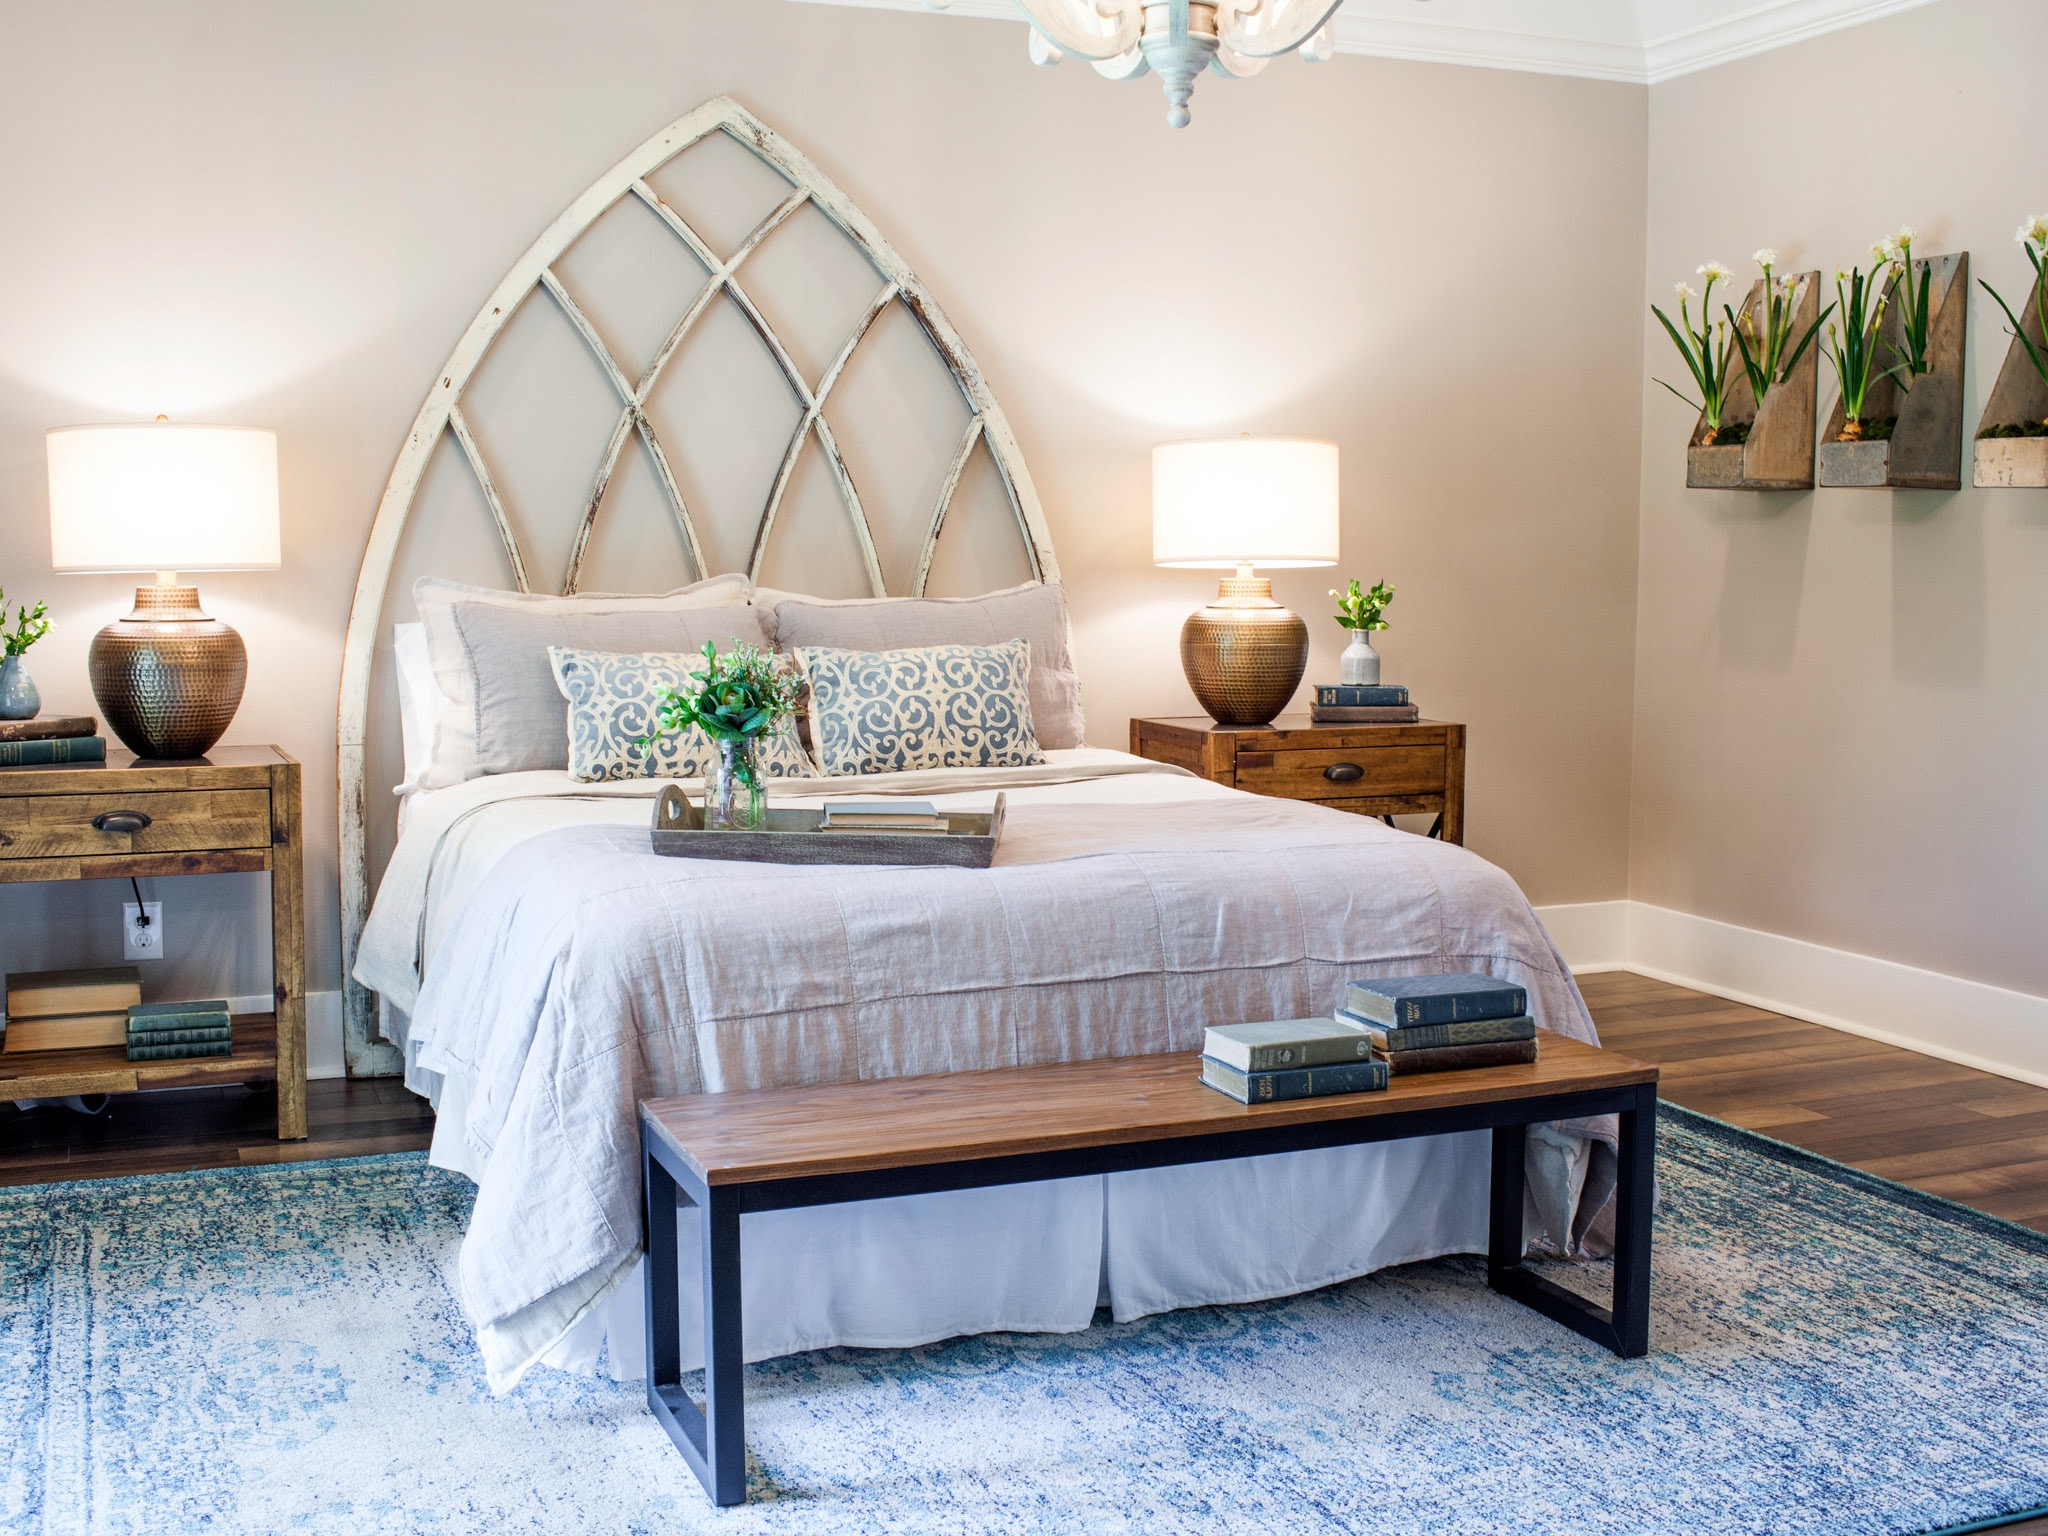 Traditional Bedroom Remodel To Create Romantic Nuance (View 10 of 18)